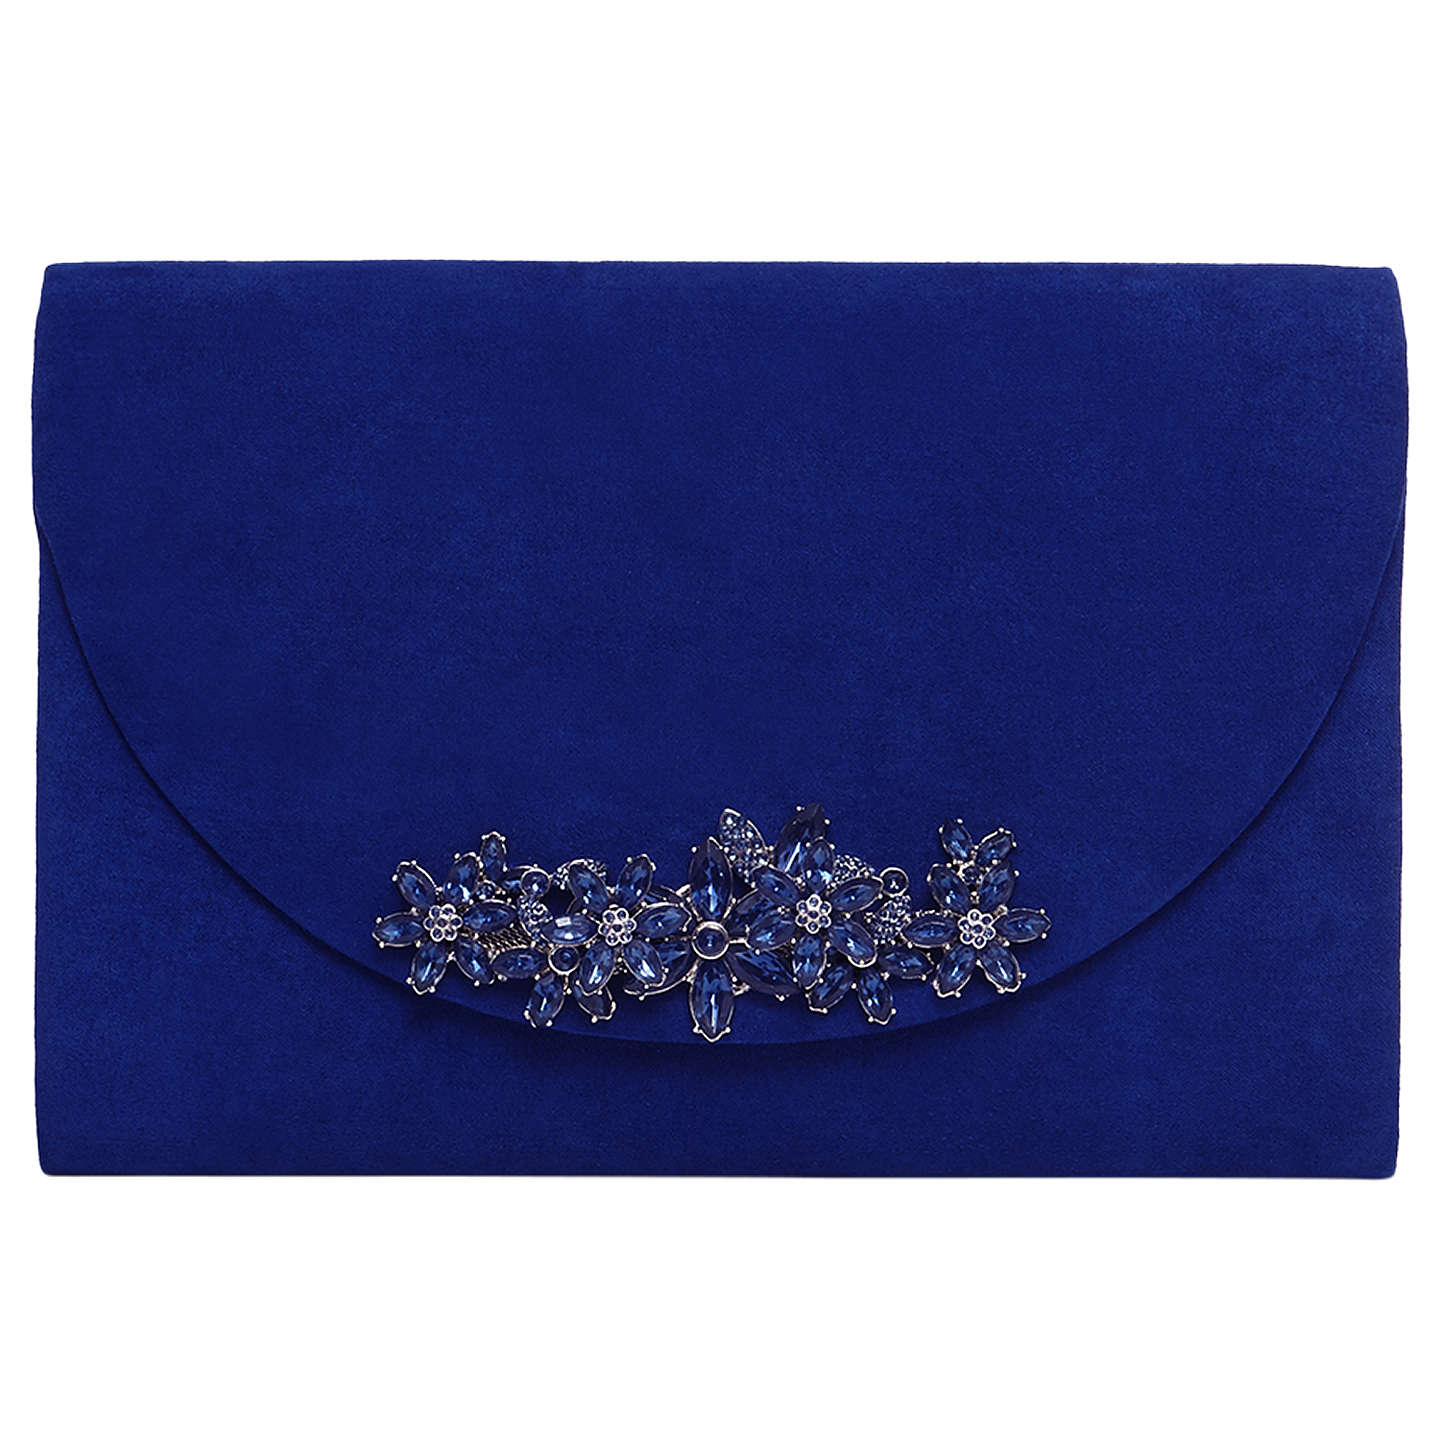 Phase Eight Eleonor Jewel Trim Clutch Bag Cheap Inexpensive Many Kinds Of For Sale Sneakernews For Sale ZP5bS7LeQ6